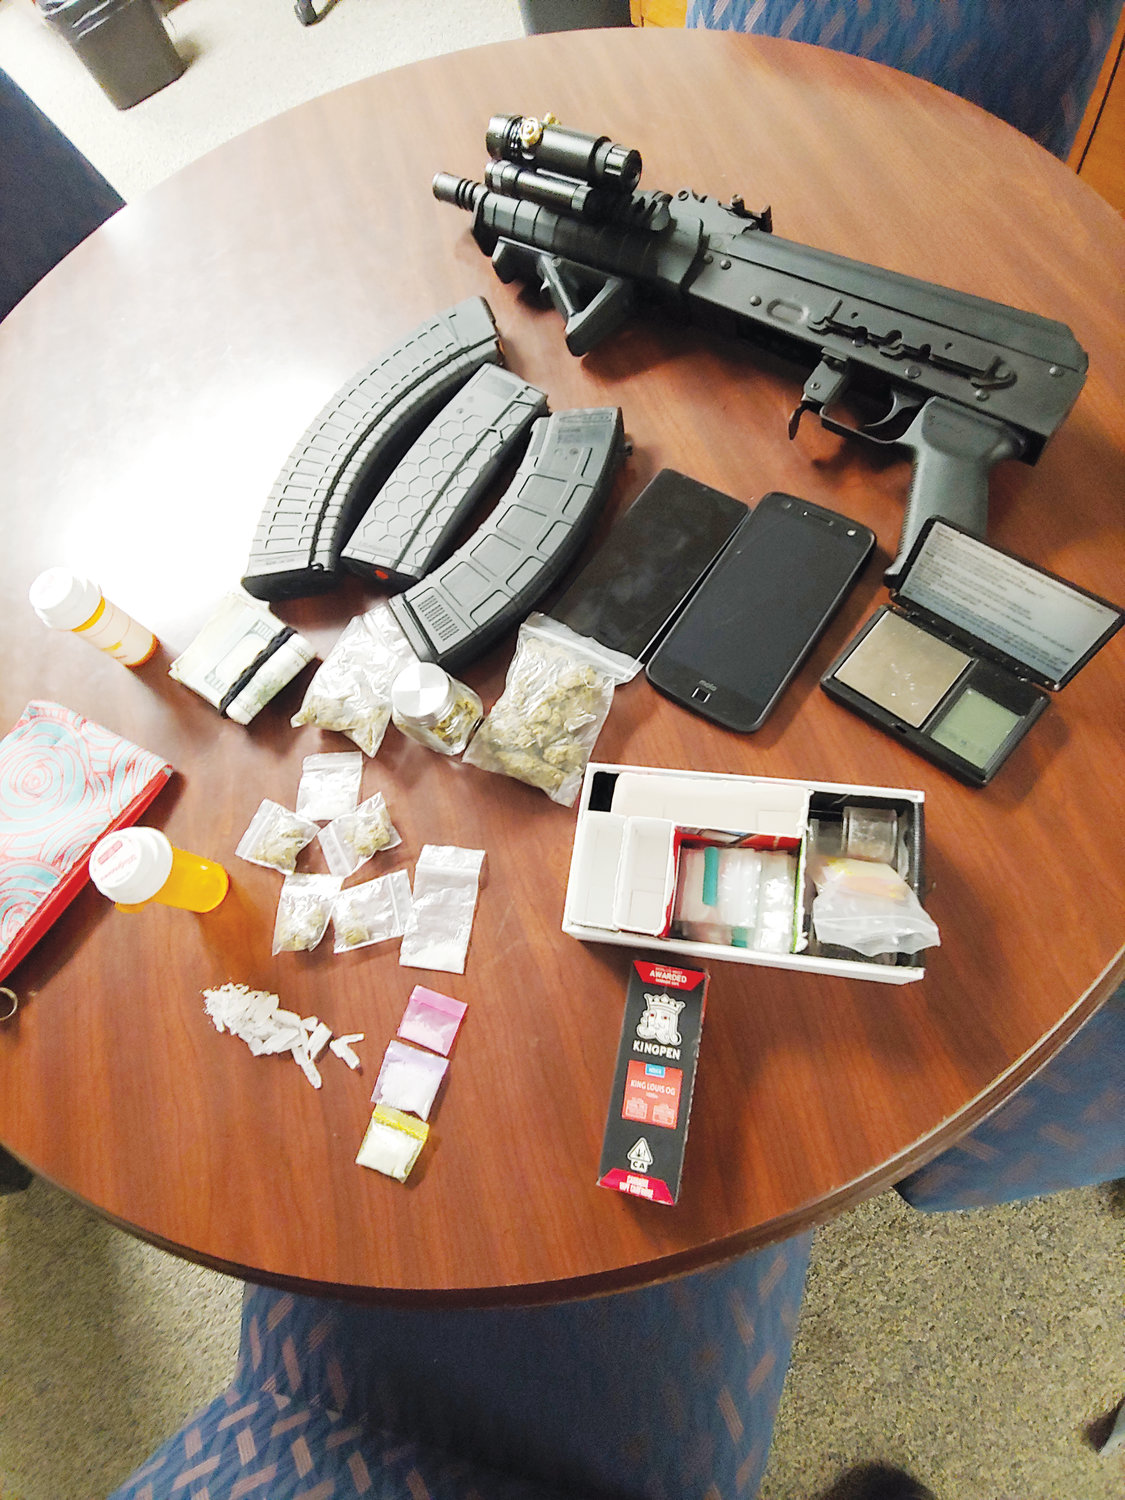 Officers with the Wayne County Sheriff's Office say they found drugs, an AK47 and clips of ammunition in a car during a traffic stop early Friday morning, May 31, 2019.